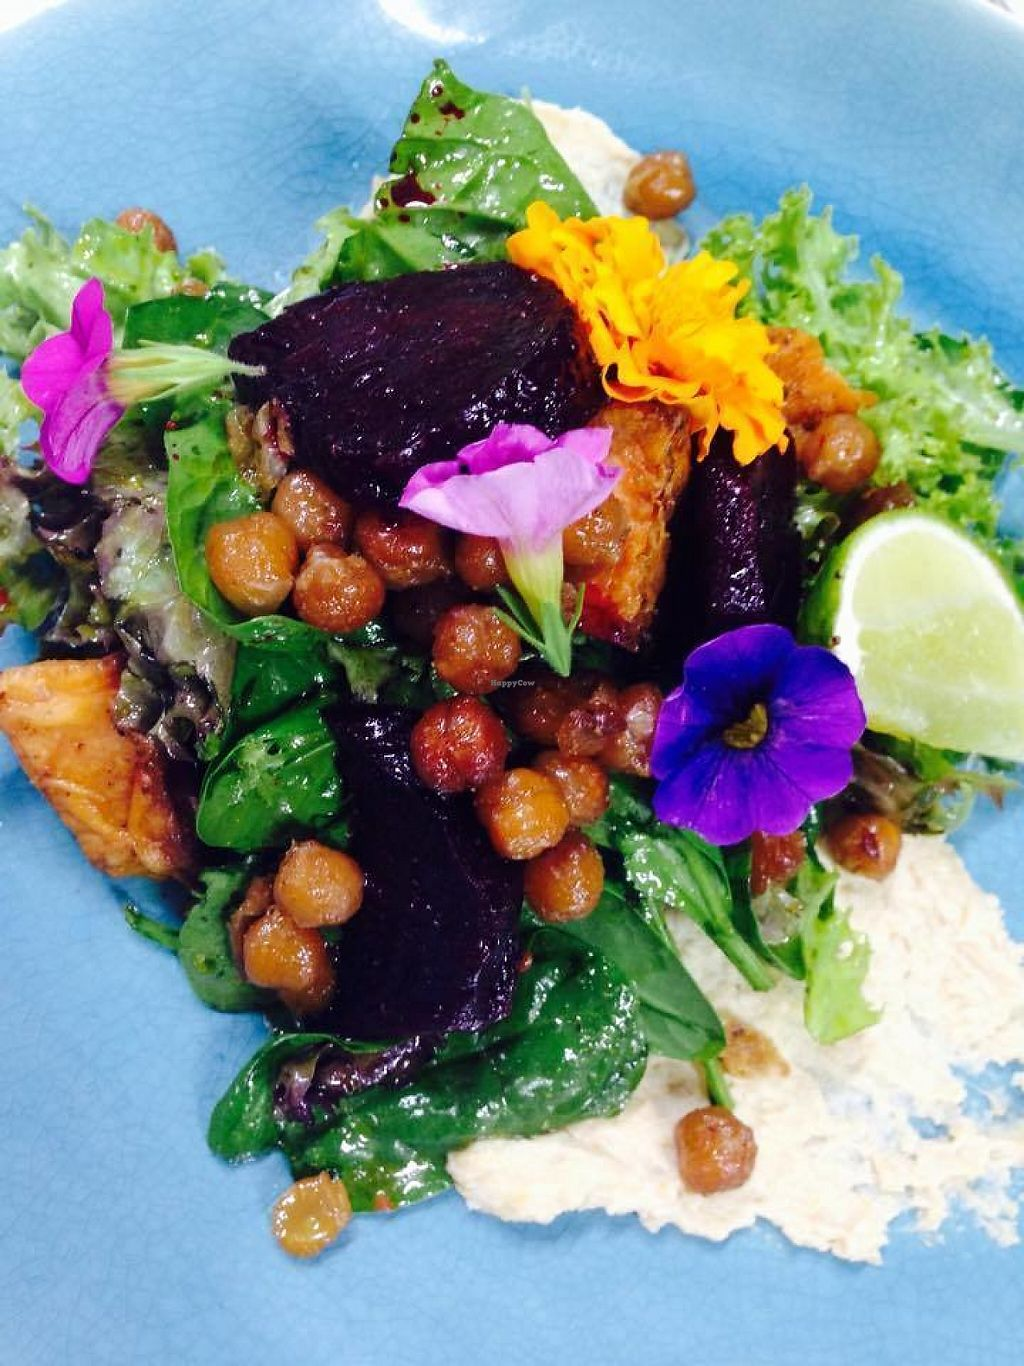 "Photo of What You Eat  by <a href=""/members/profile/whatyoueatcafe"">whatyoueatcafe</a> <br/>Roasted Sweet Potato and Beetroot Quinoa Salad with WYE's secret housemade dressing <br/> May 7, 2017  - <a href='/contact/abuse/image/66998/256581'>Report</a>"